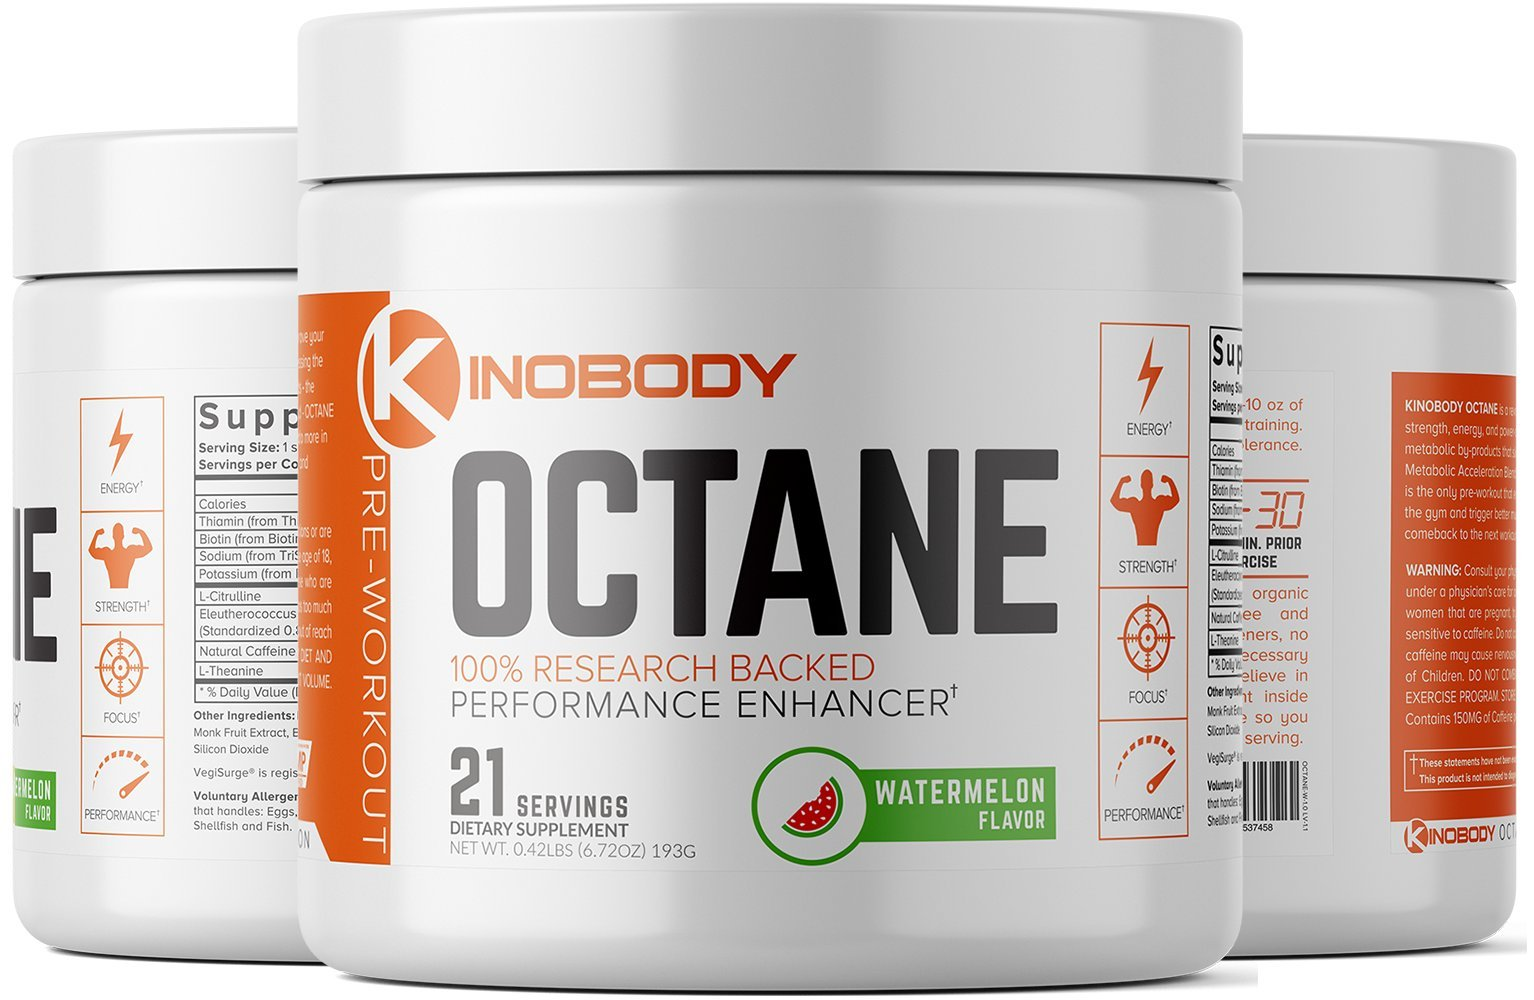 Kinobody: Octane - Pre-Workout Supplement - 21 Servings - 100% Research Backed Performance Enhancer - Boosts Energy - Improves Recovery Time - Decreases Metabolic Stressors - Builds Stamina